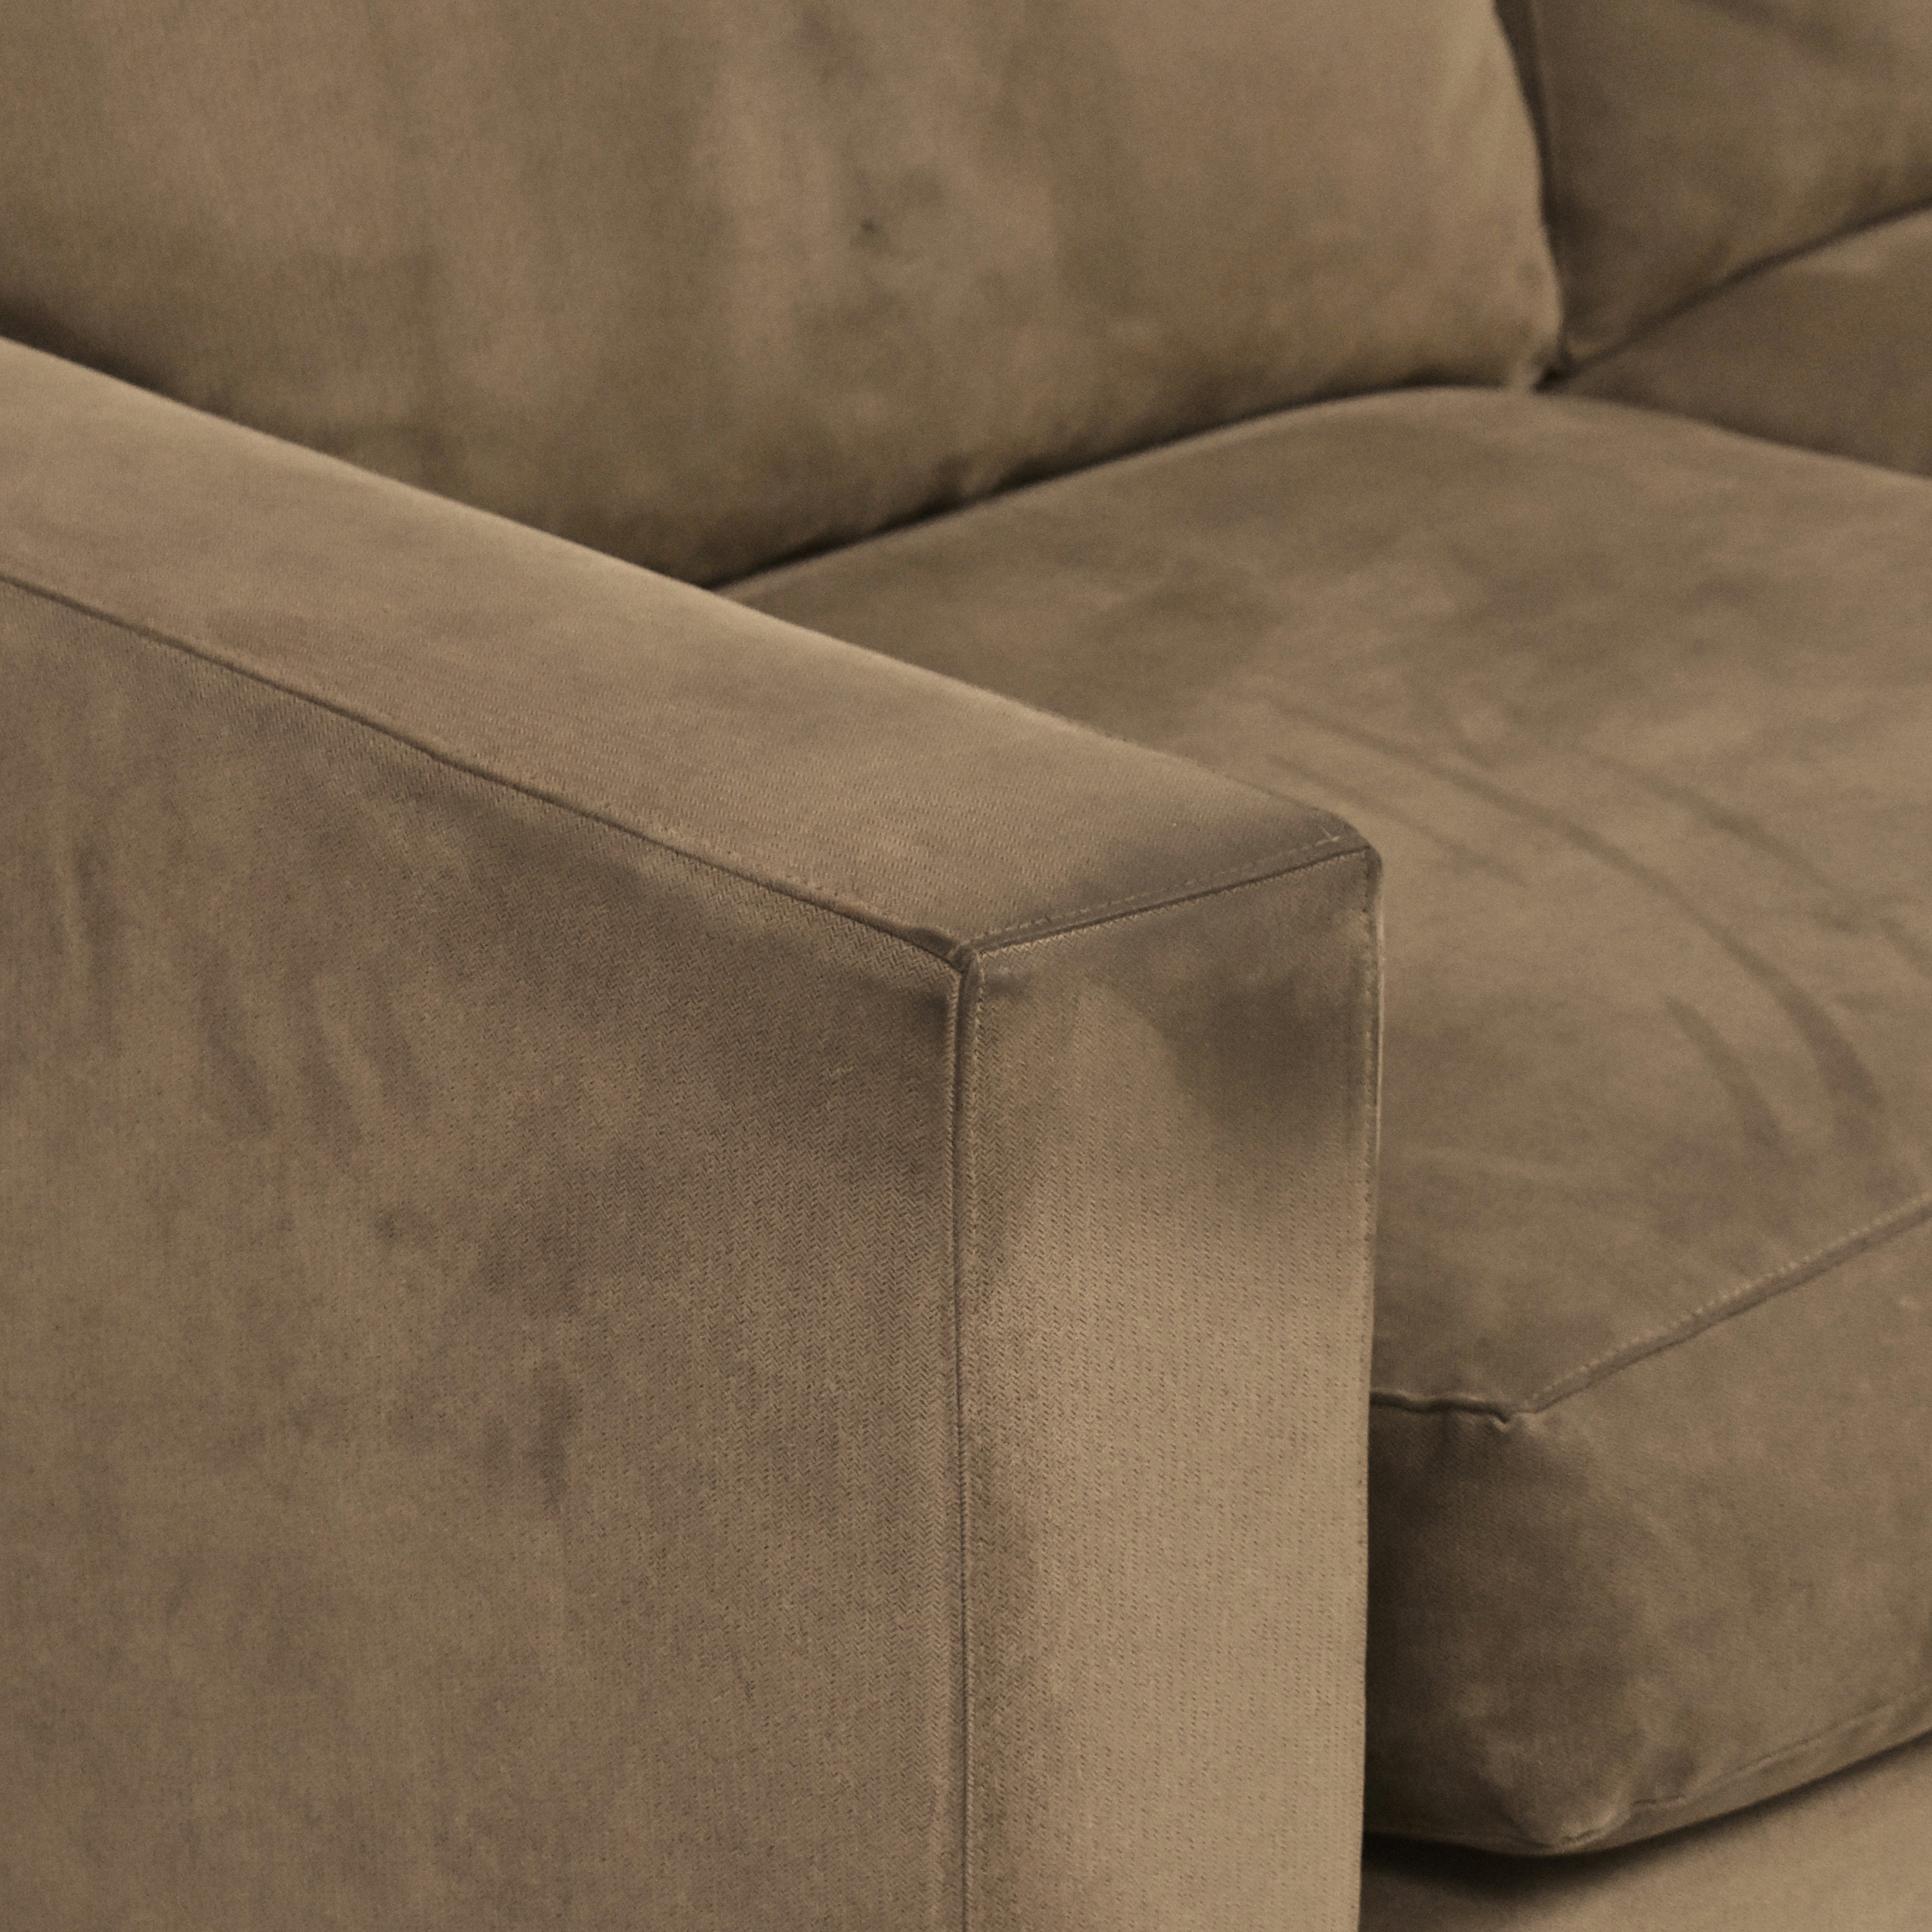 buy Crate & Barrel Axis II Chaise Sectional Sofa Crate & Barrel Sectionals